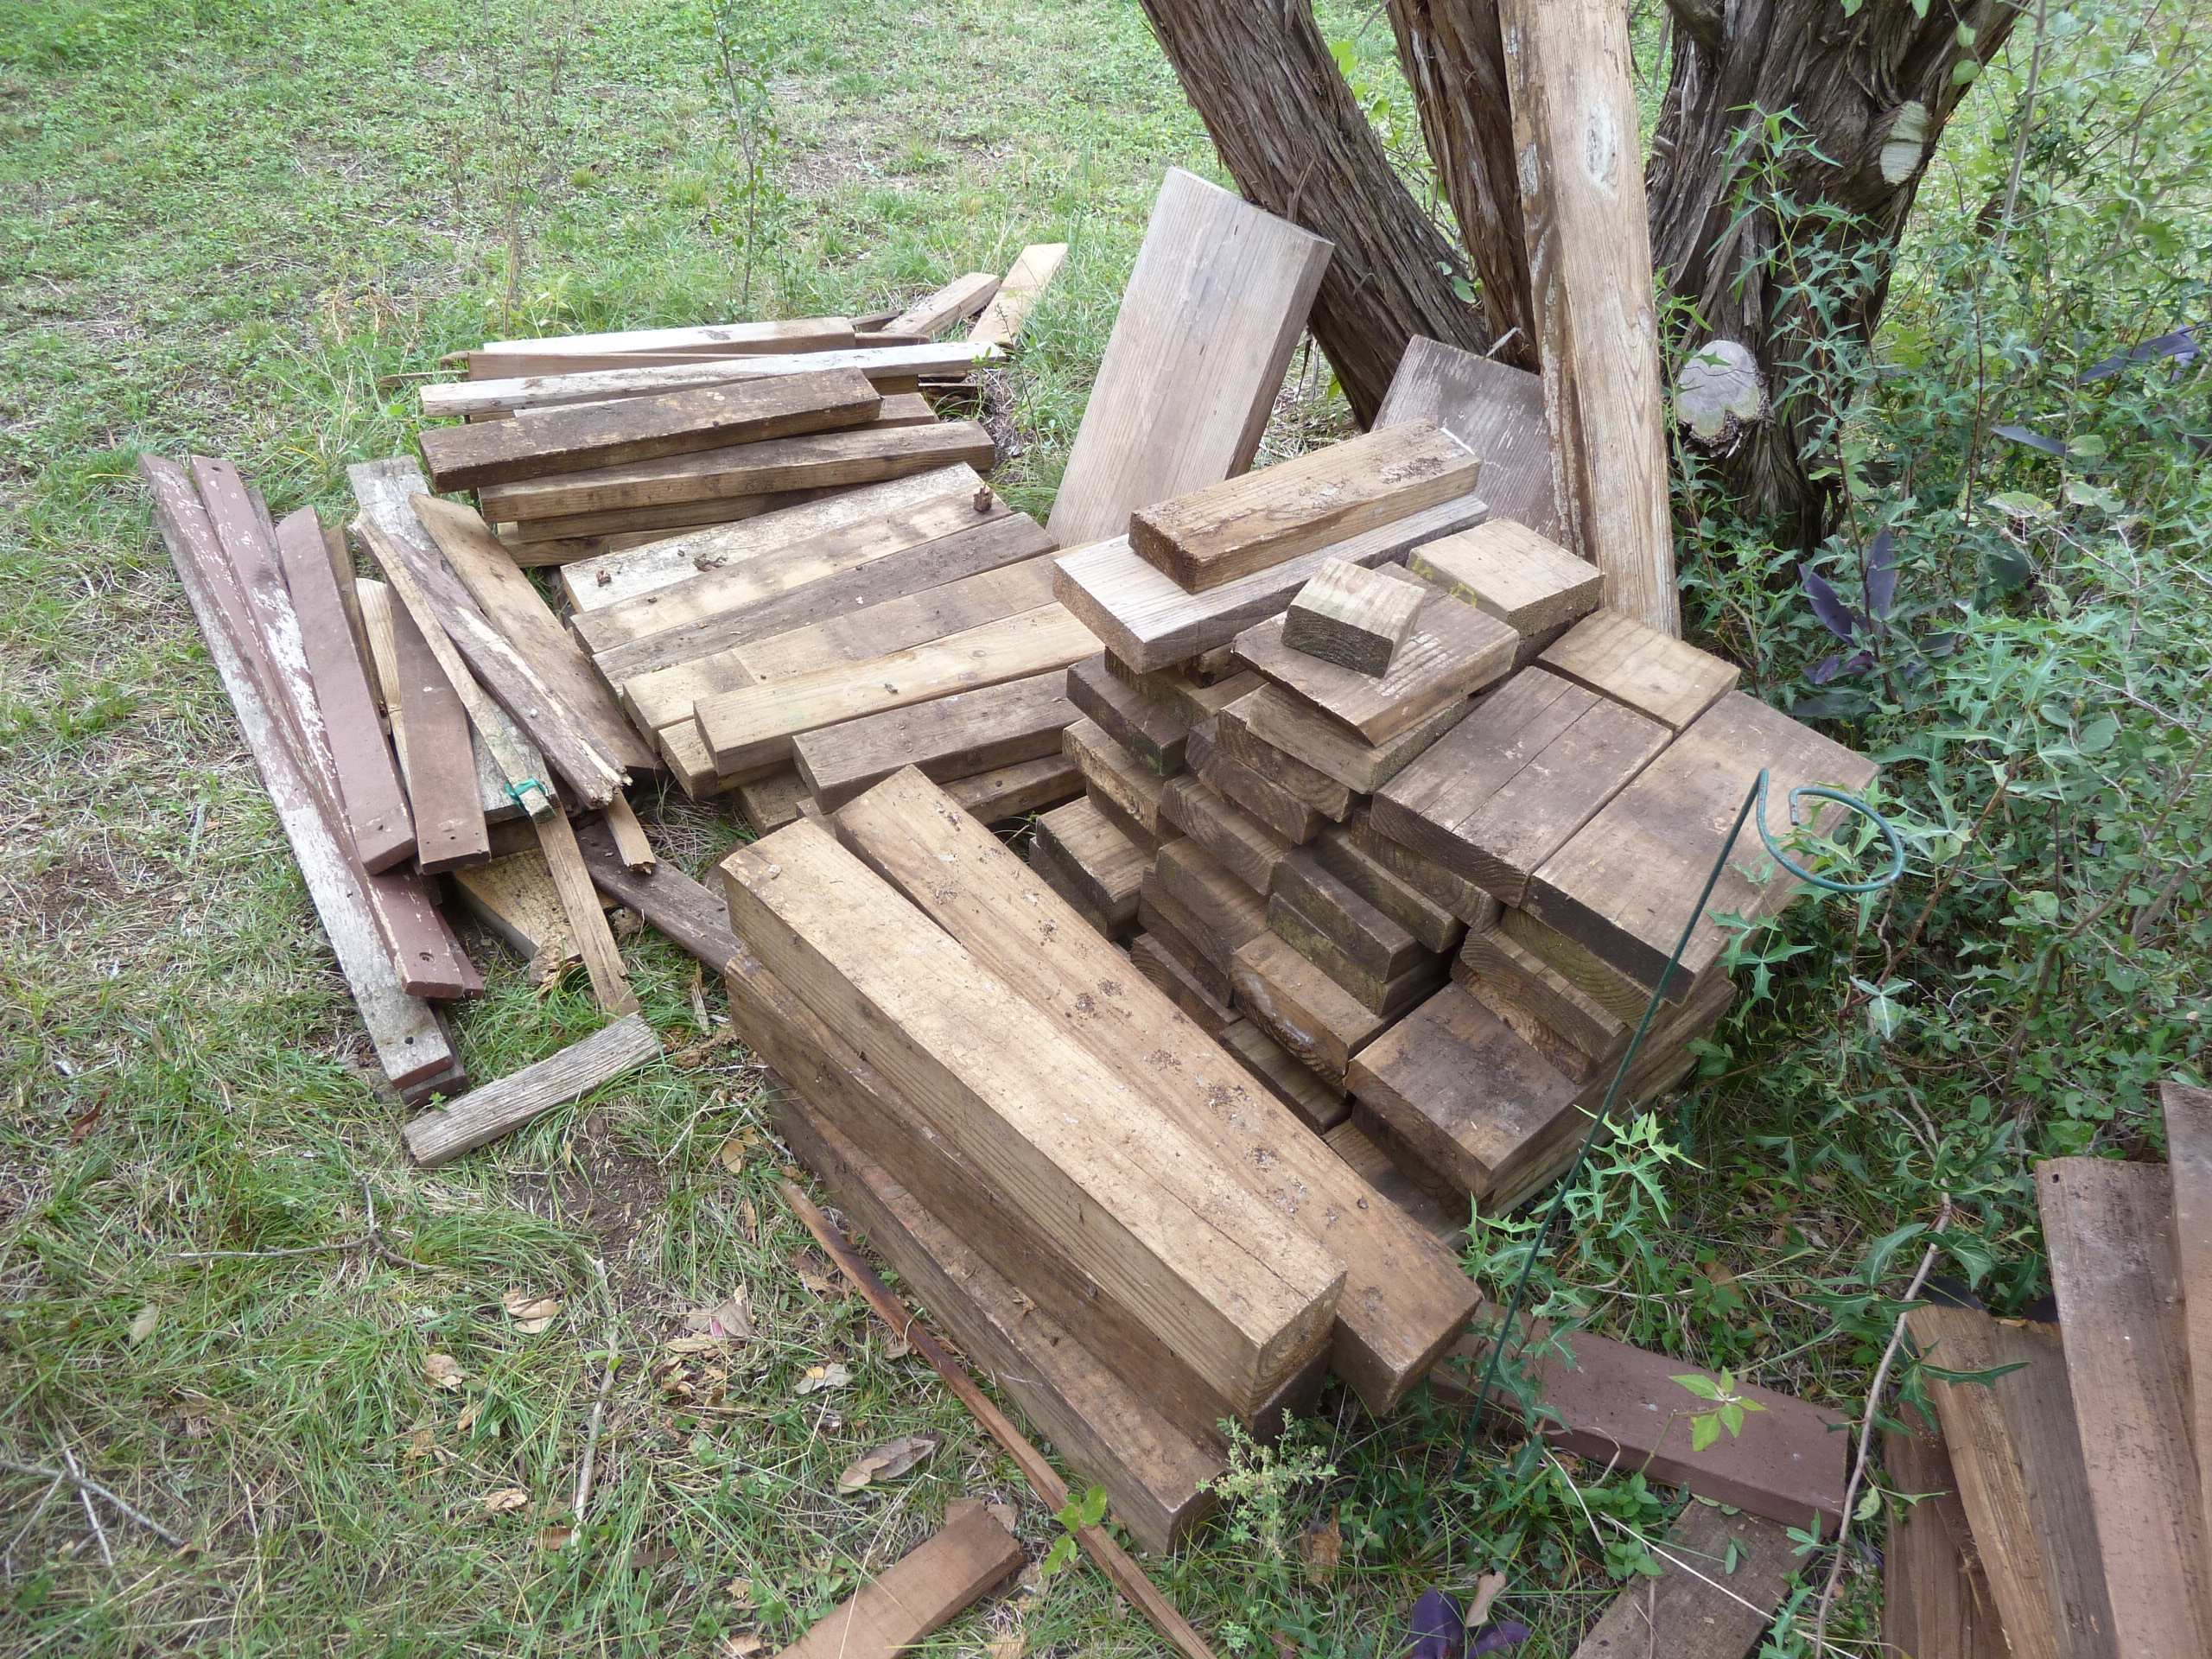 Outdoor Wood Projects For Beginners Free Woodworking Plans Pdf Files